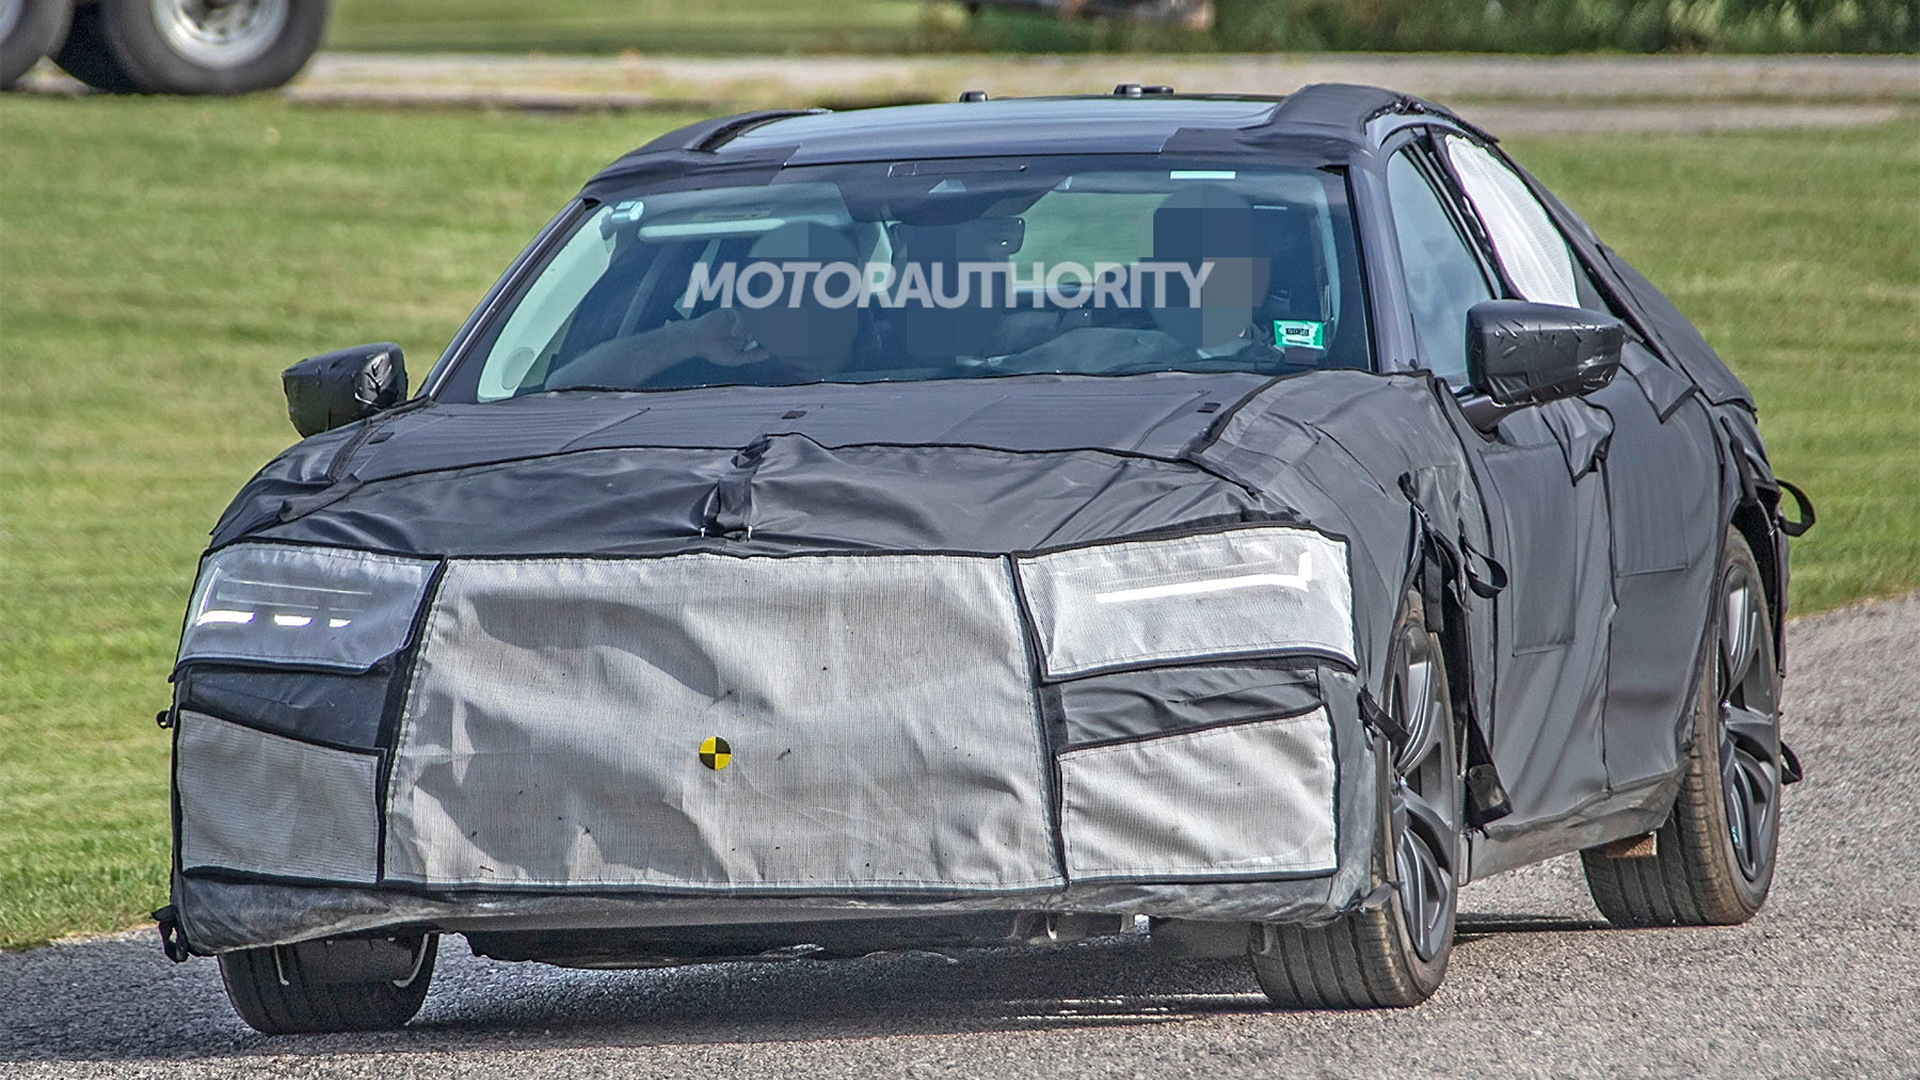 2021 Acura TLX spy shots - Photo credit: S. Baldauf/SB-Medien